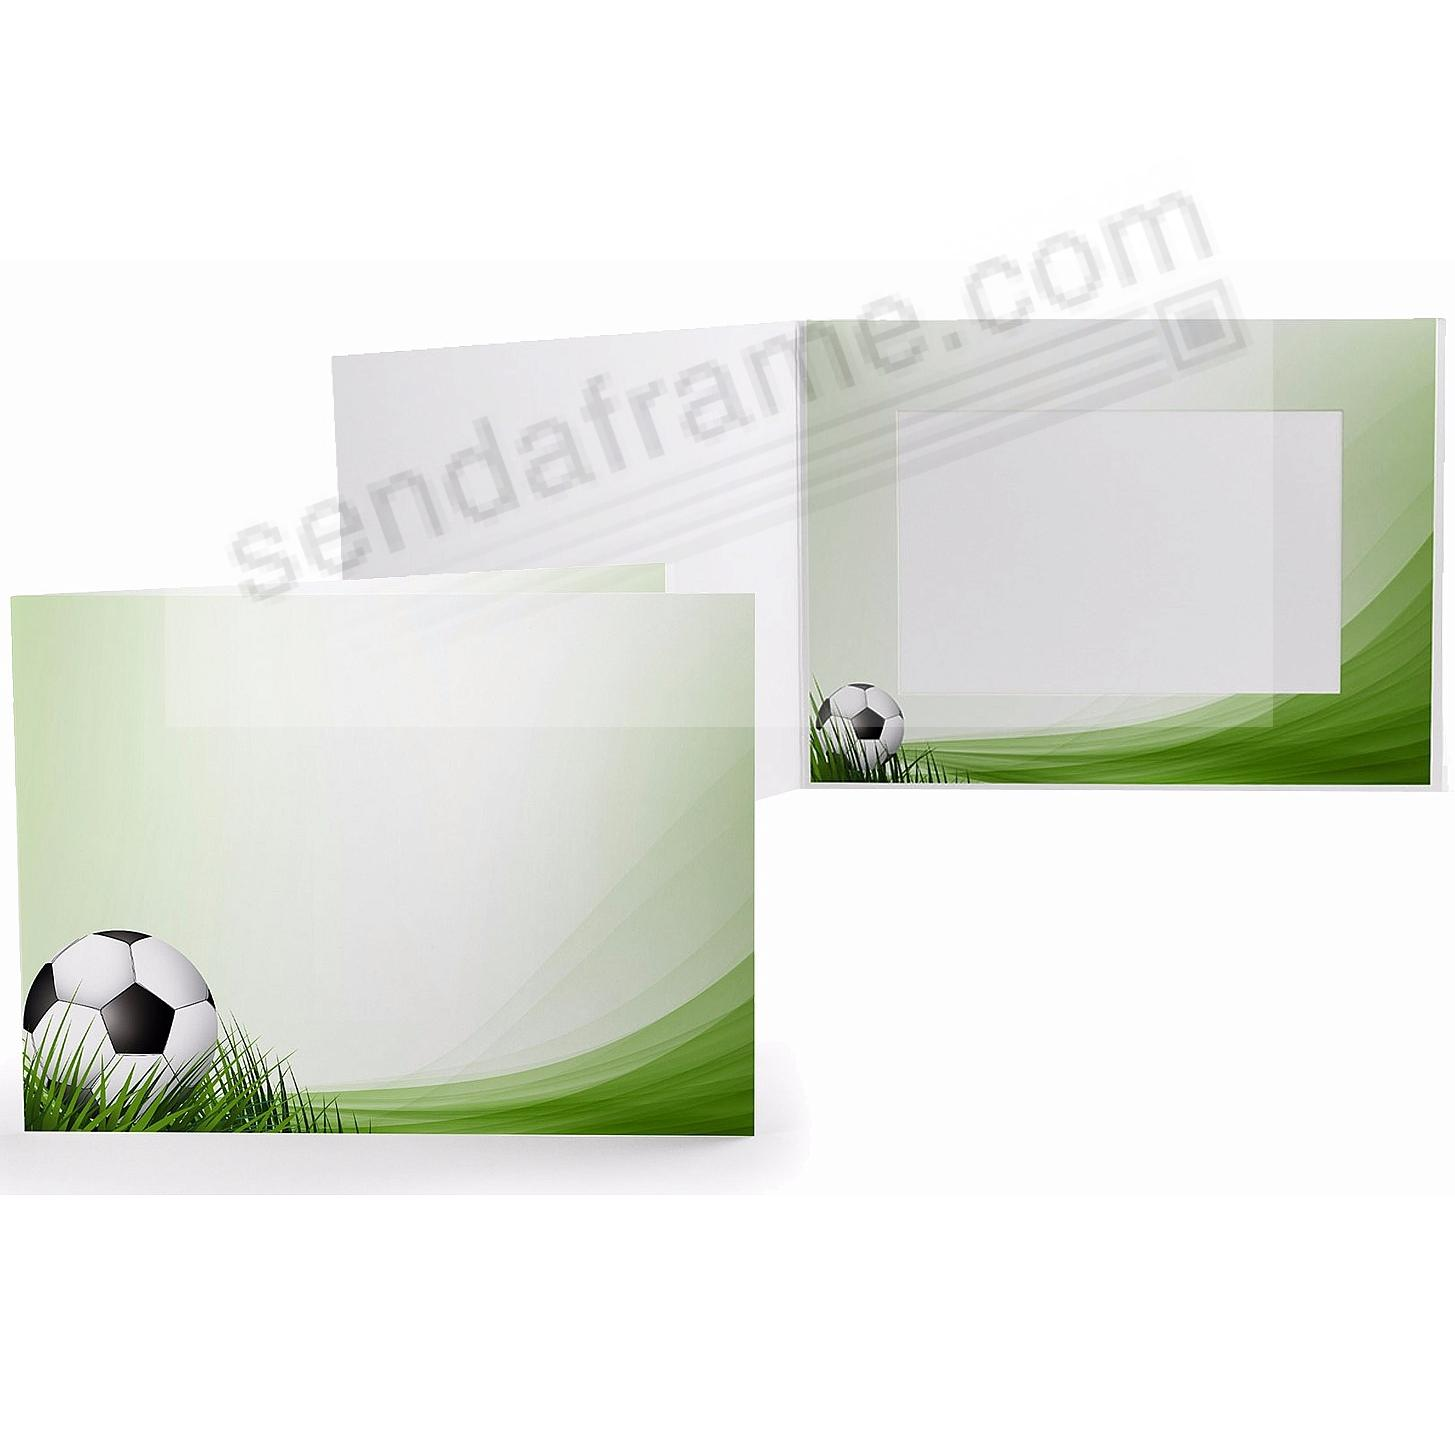 SOCCER FIELD Cardboard Photo Folder for 6x4 prints